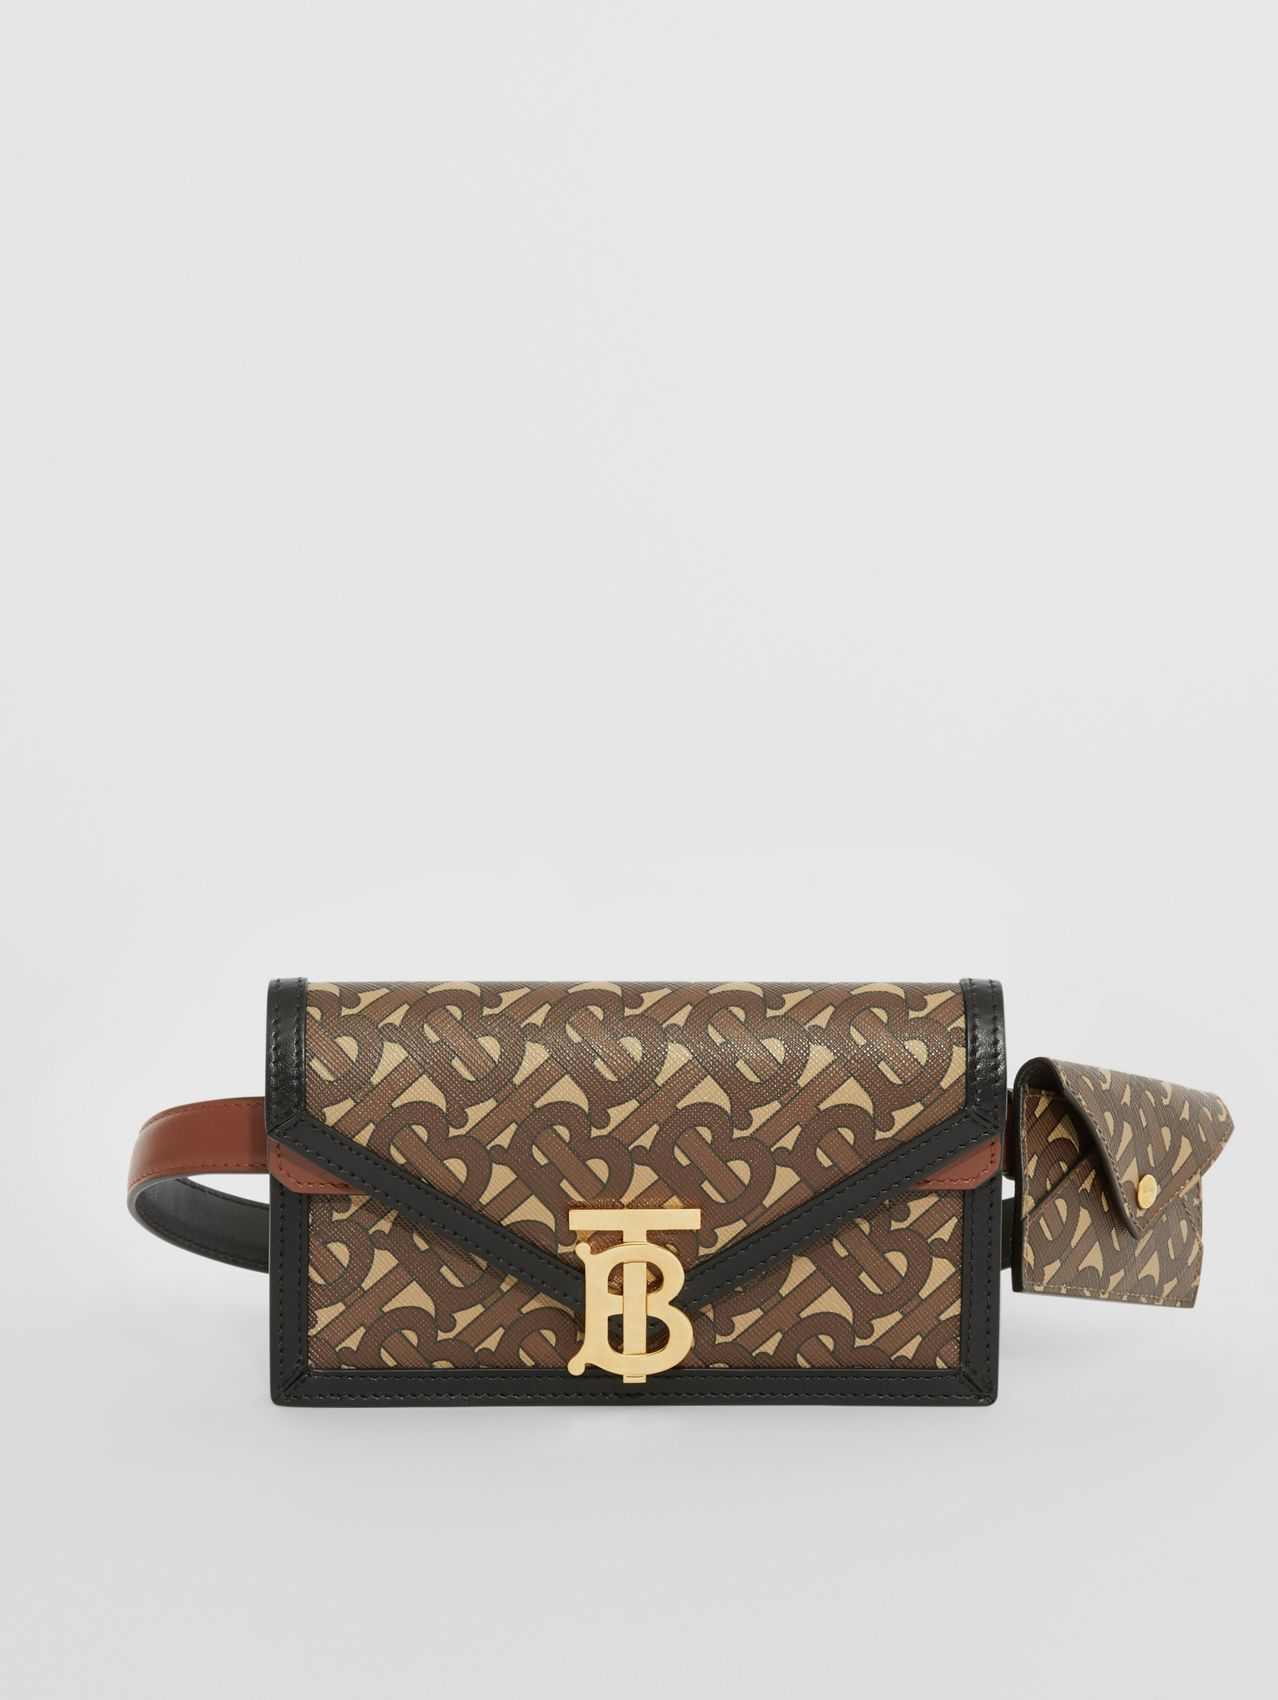 Belted Monogram E-canvas TB Envelope Clutch in Bridle Brown